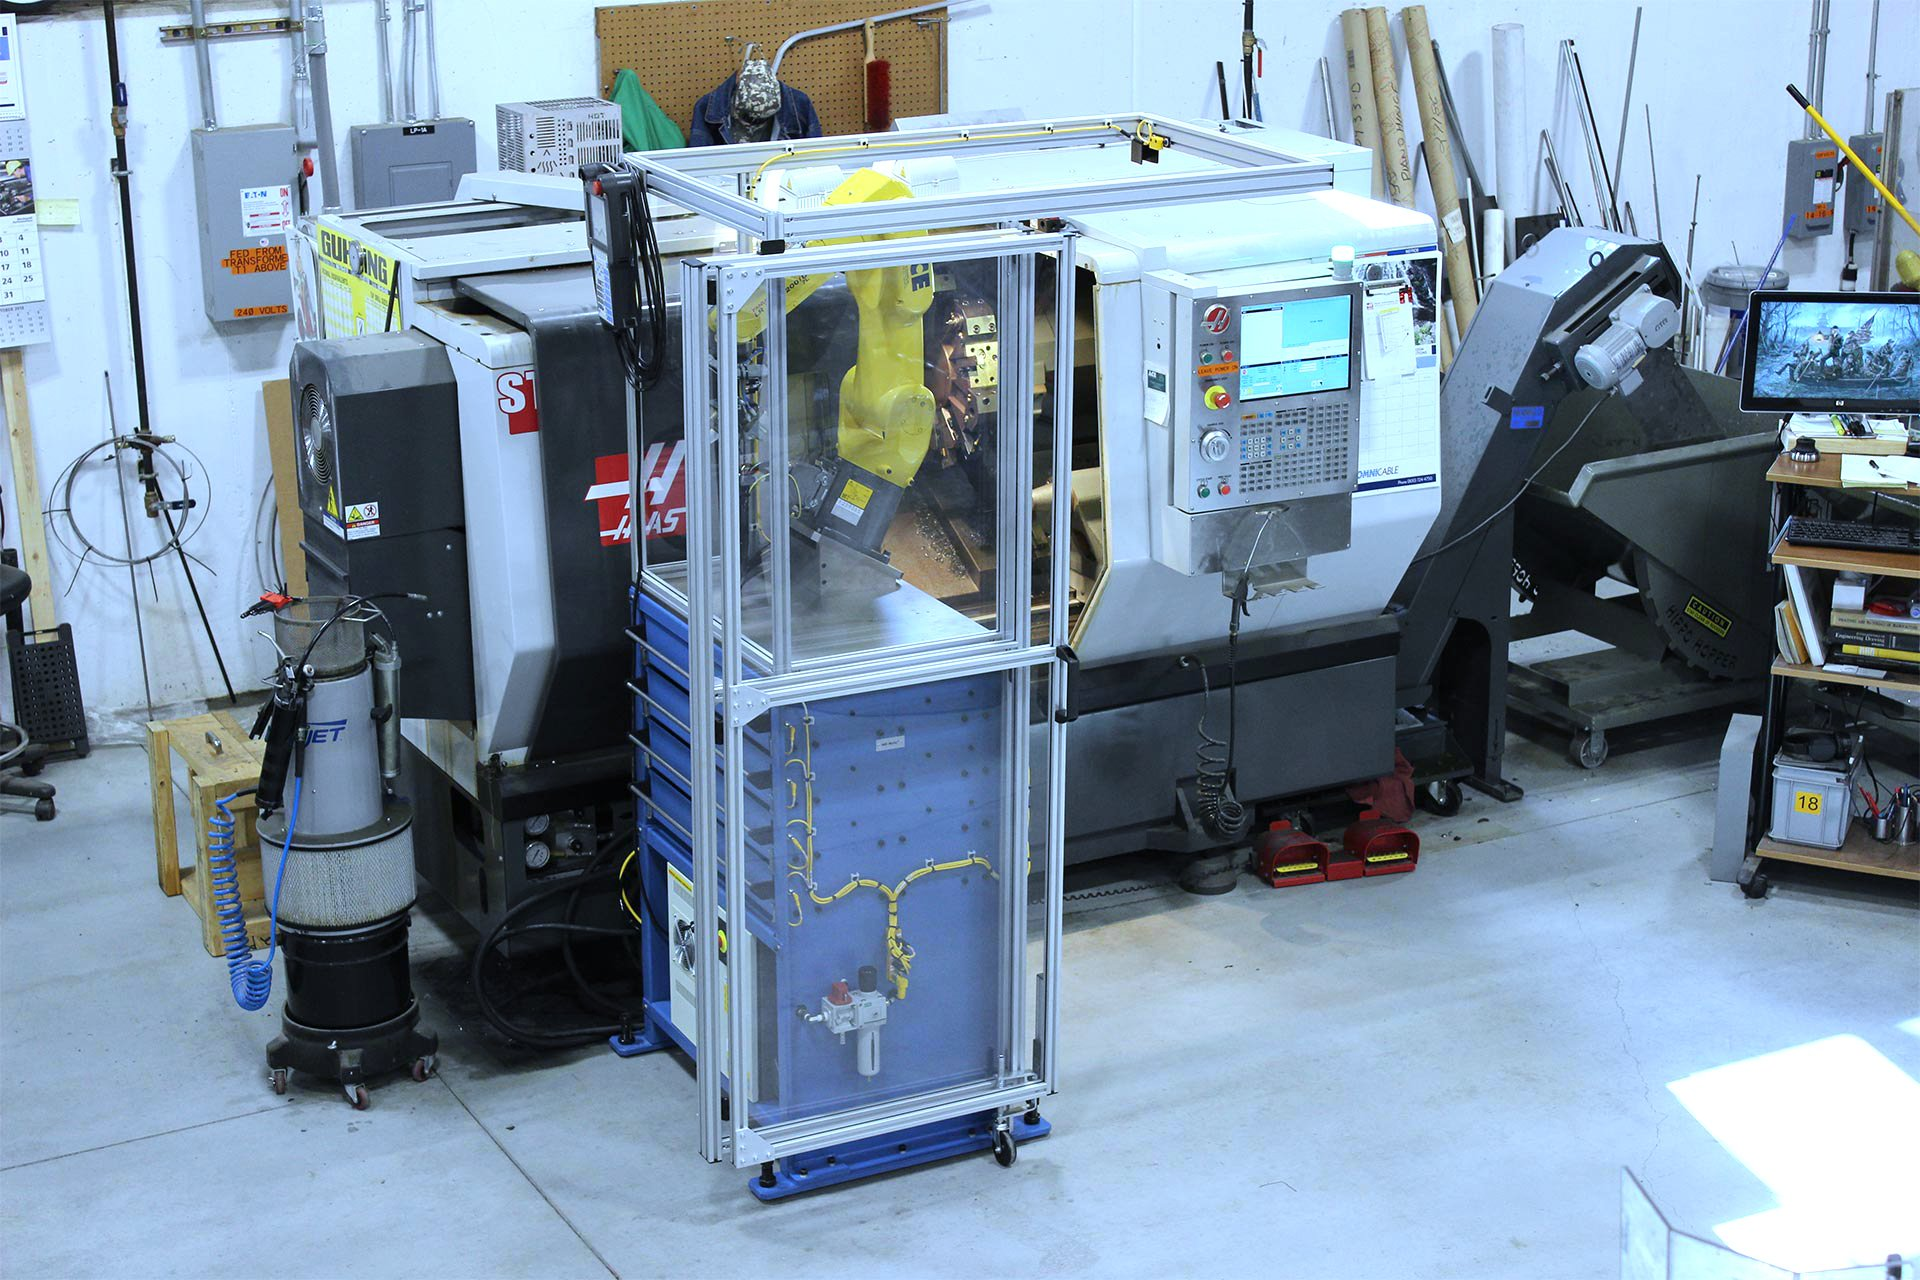 Front left side view of the Model MD MateTM Machine Tender positioned at a CNC lathe. Note: The MD MateTM is shown with all drawers closed and the bi-fold safety guard shown in the open position, illustrating how little floor space the MD MateTM uses.